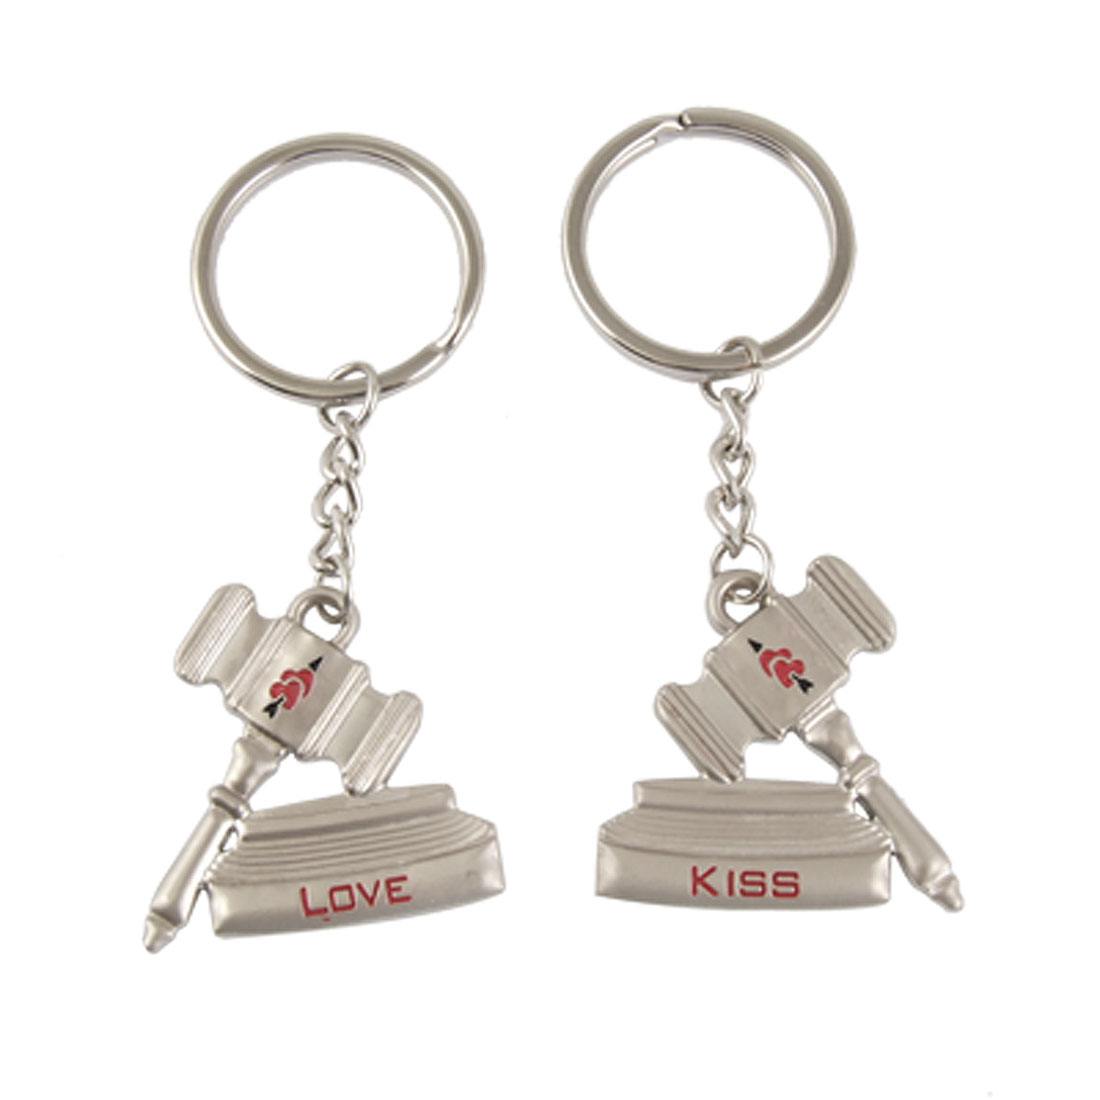 2 Pcs Judger Hammer Shape Pandent Split Keychains Keyrings